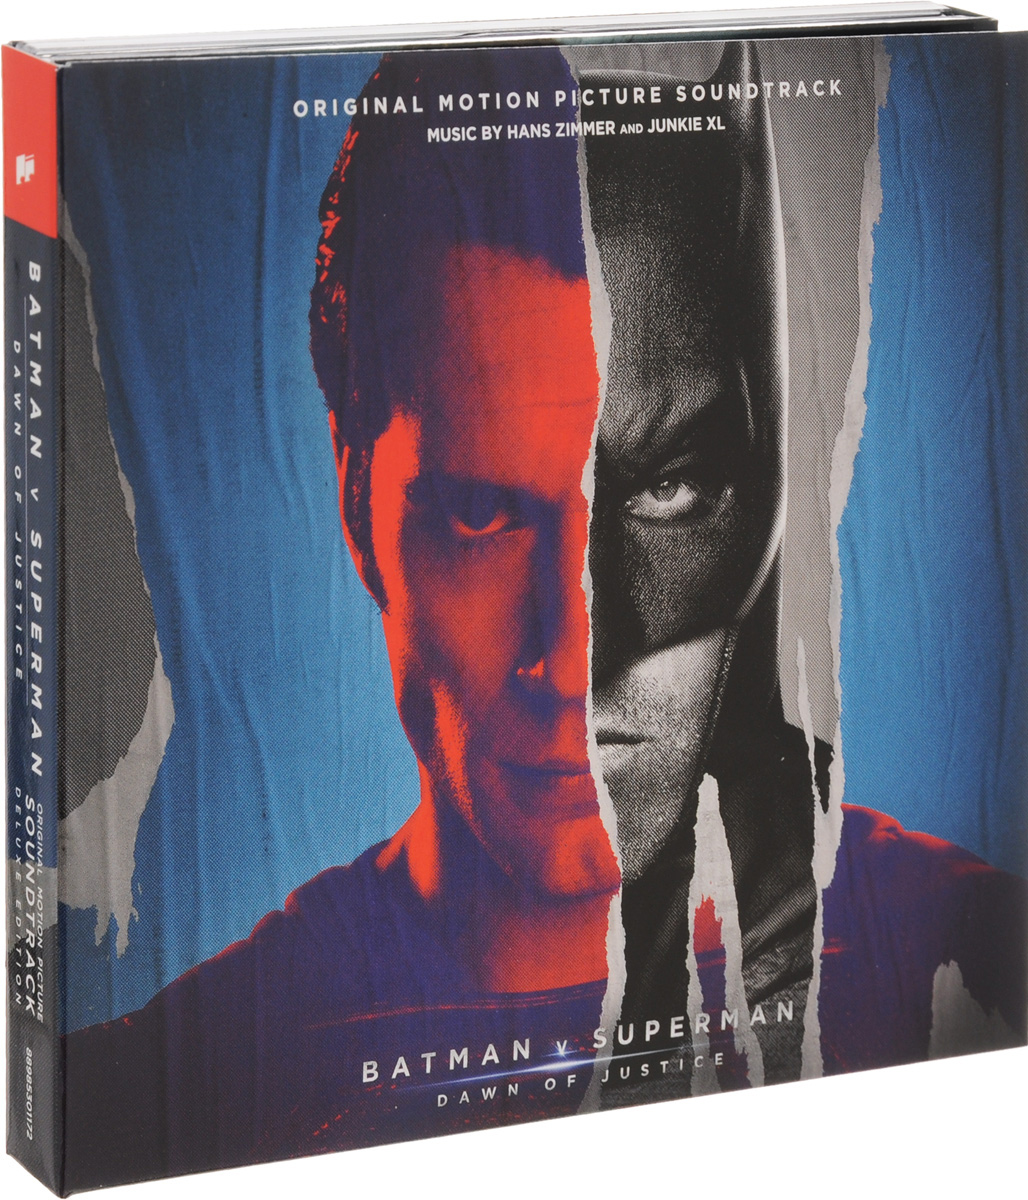 Hans Zimmer, Junkie XL. Batman V Superman. Dawn Of Justice. Original Motion Picture Soundtrack. Deluxe Edition (2 CD) selena limited edition picture disc cd rare collectible music display